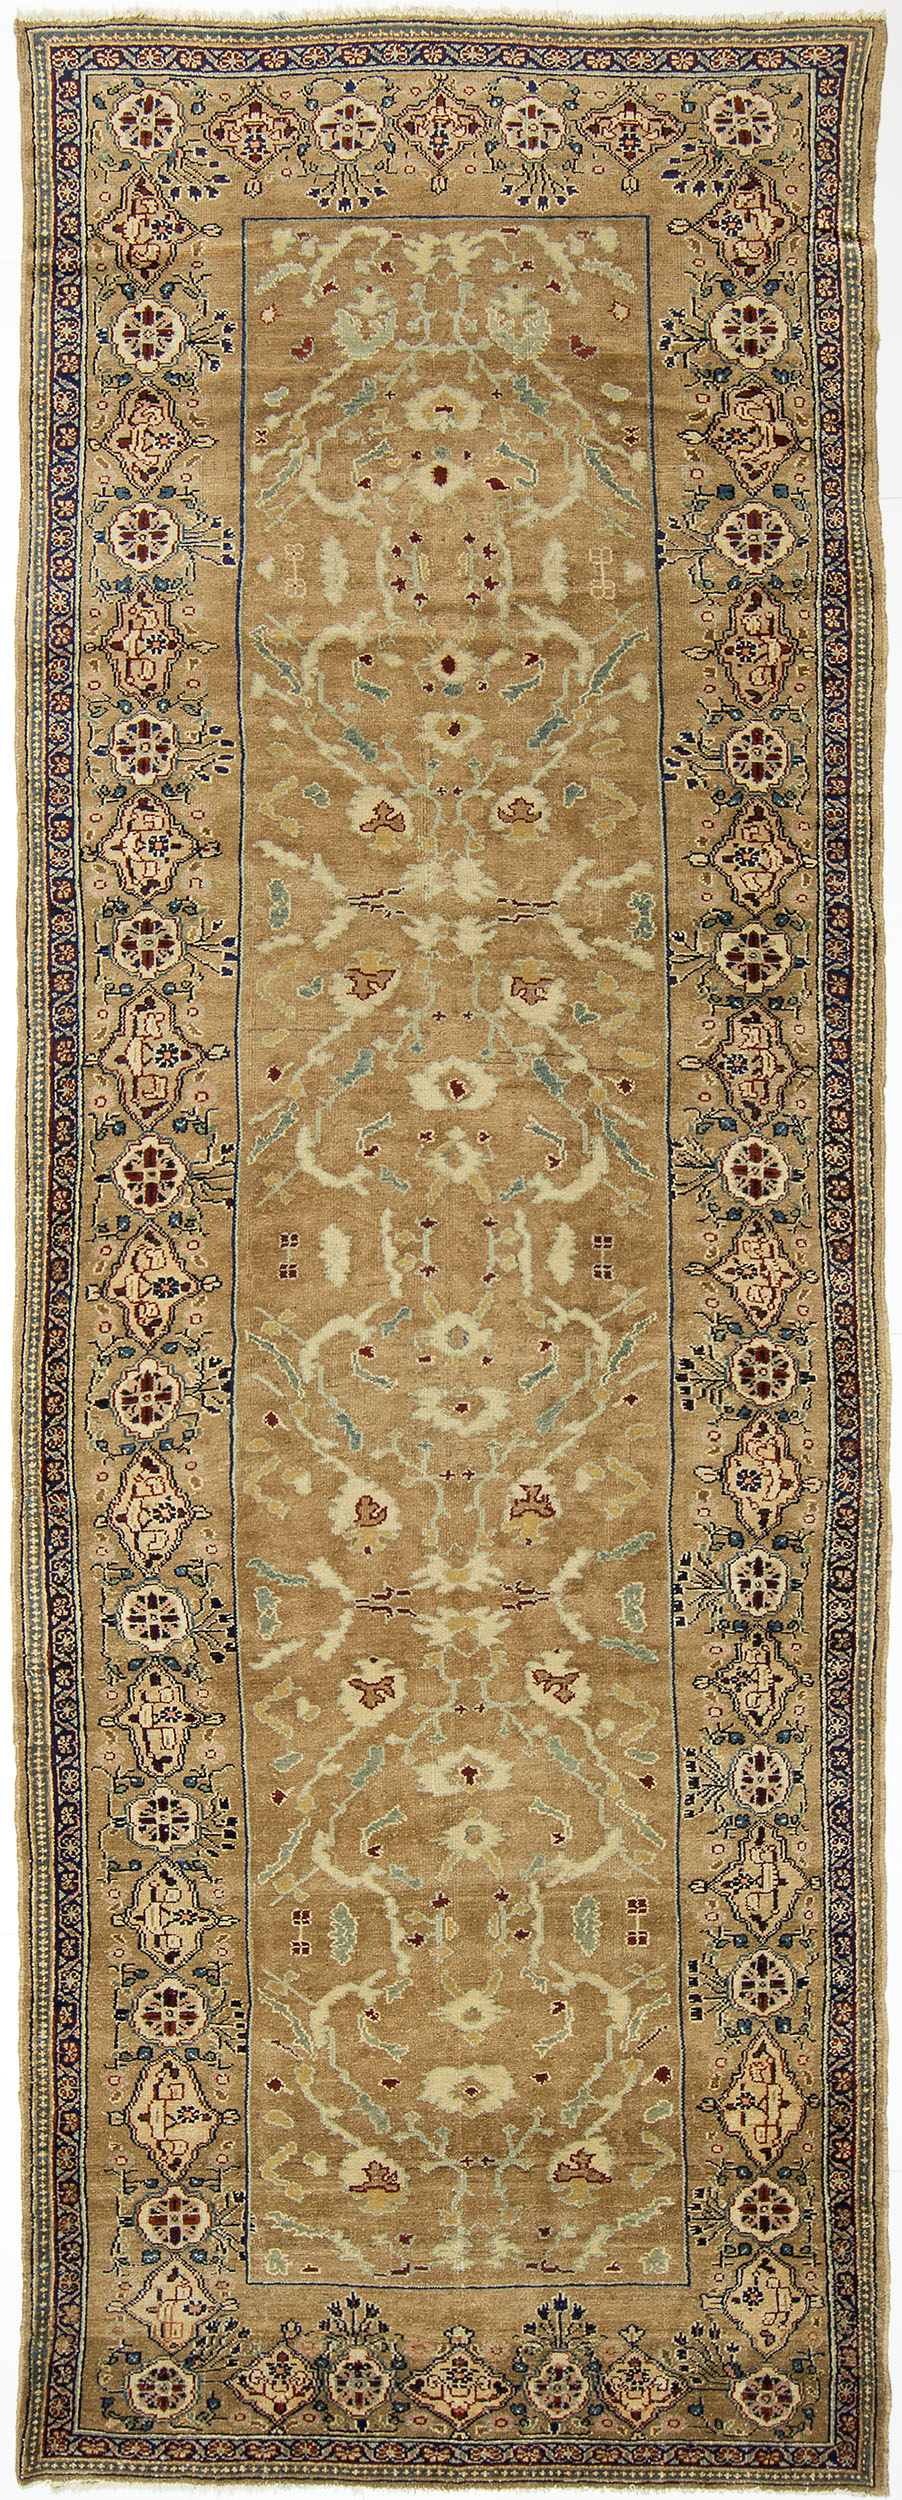 "NW Persian Gallery Carpet 15' 0"" x 5' 1"""